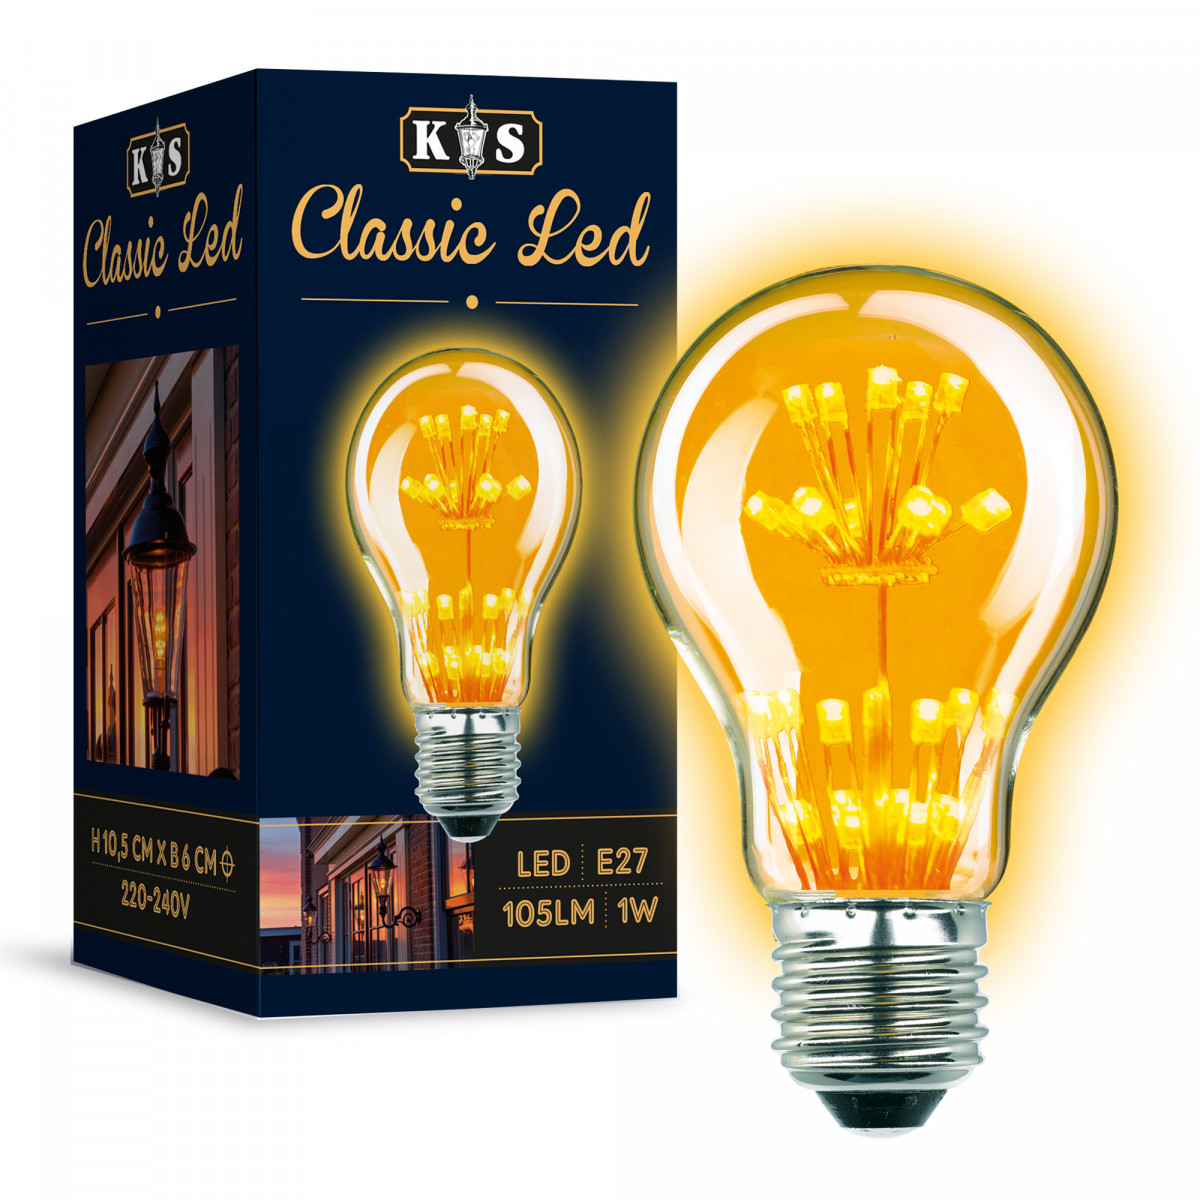 LED Lamp Classic Led 1W